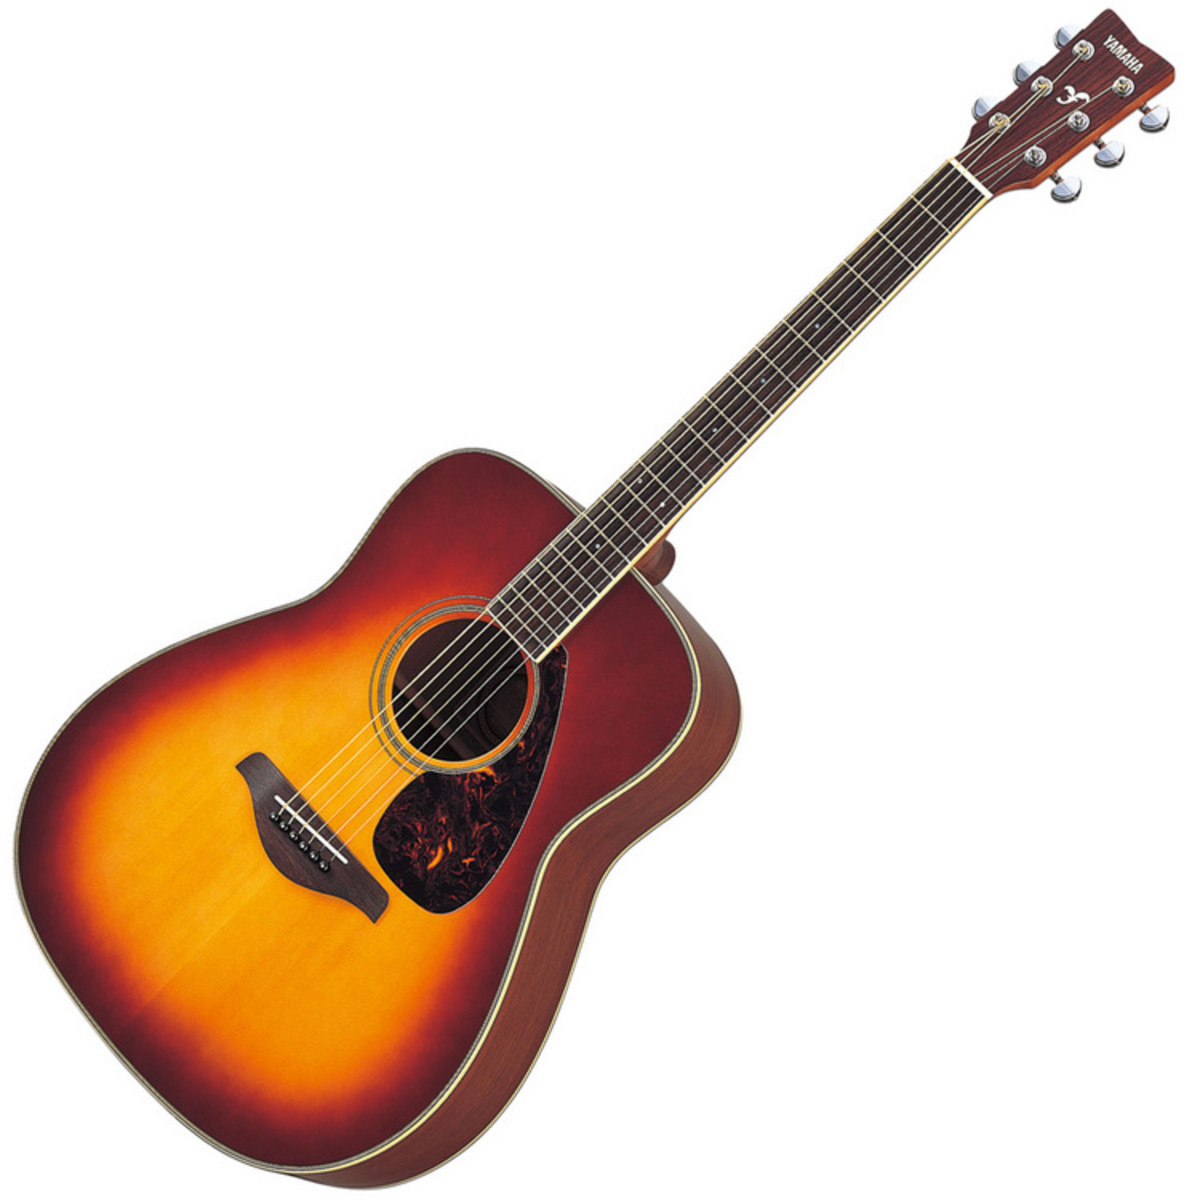 Disc yamaha fg720s acoustic guitar sunburst at for Yamaha acoustic bass guitar